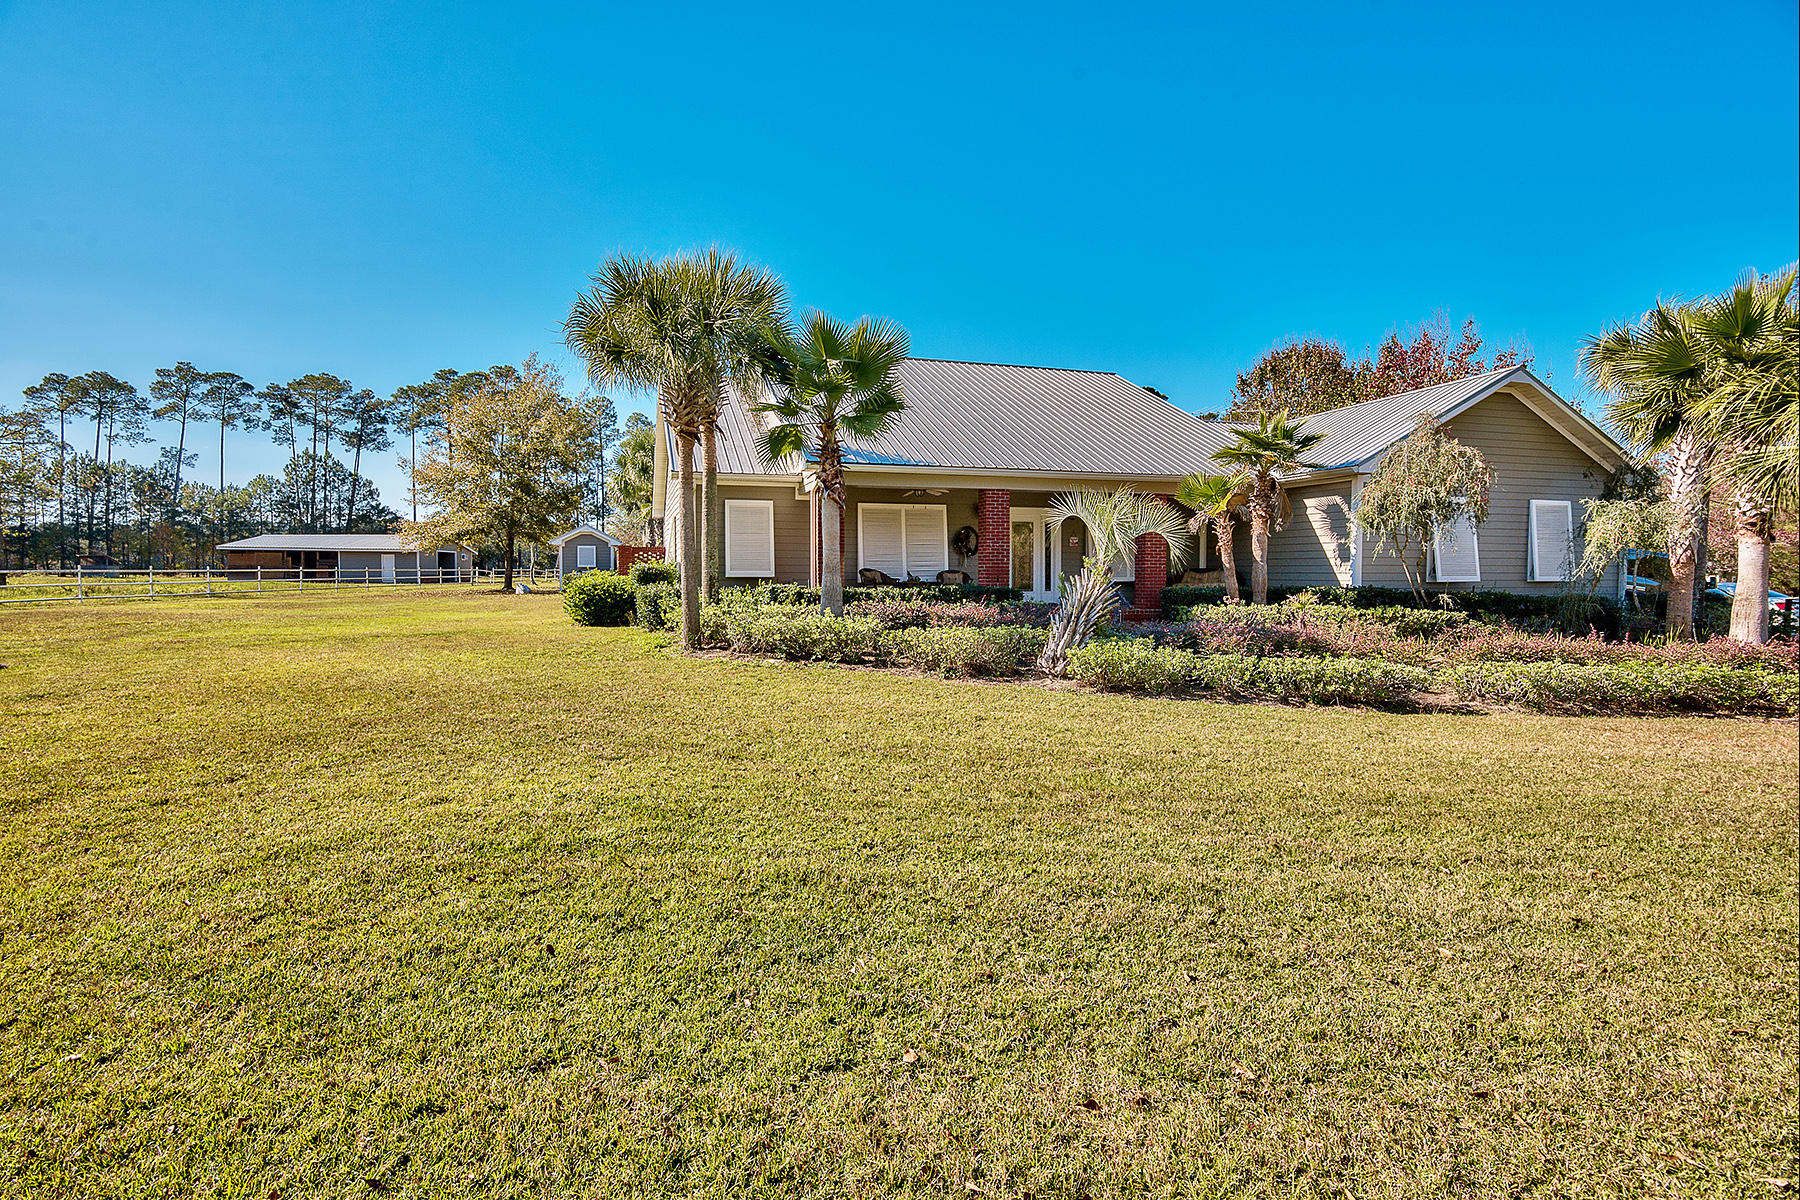 Farm / Ranch / Plantation for Sale at EQUESTRIAN ESTATE WITH WATERFRONT ACCESS 356 Whitfield Rd Freeport, Florida, 32439 United States